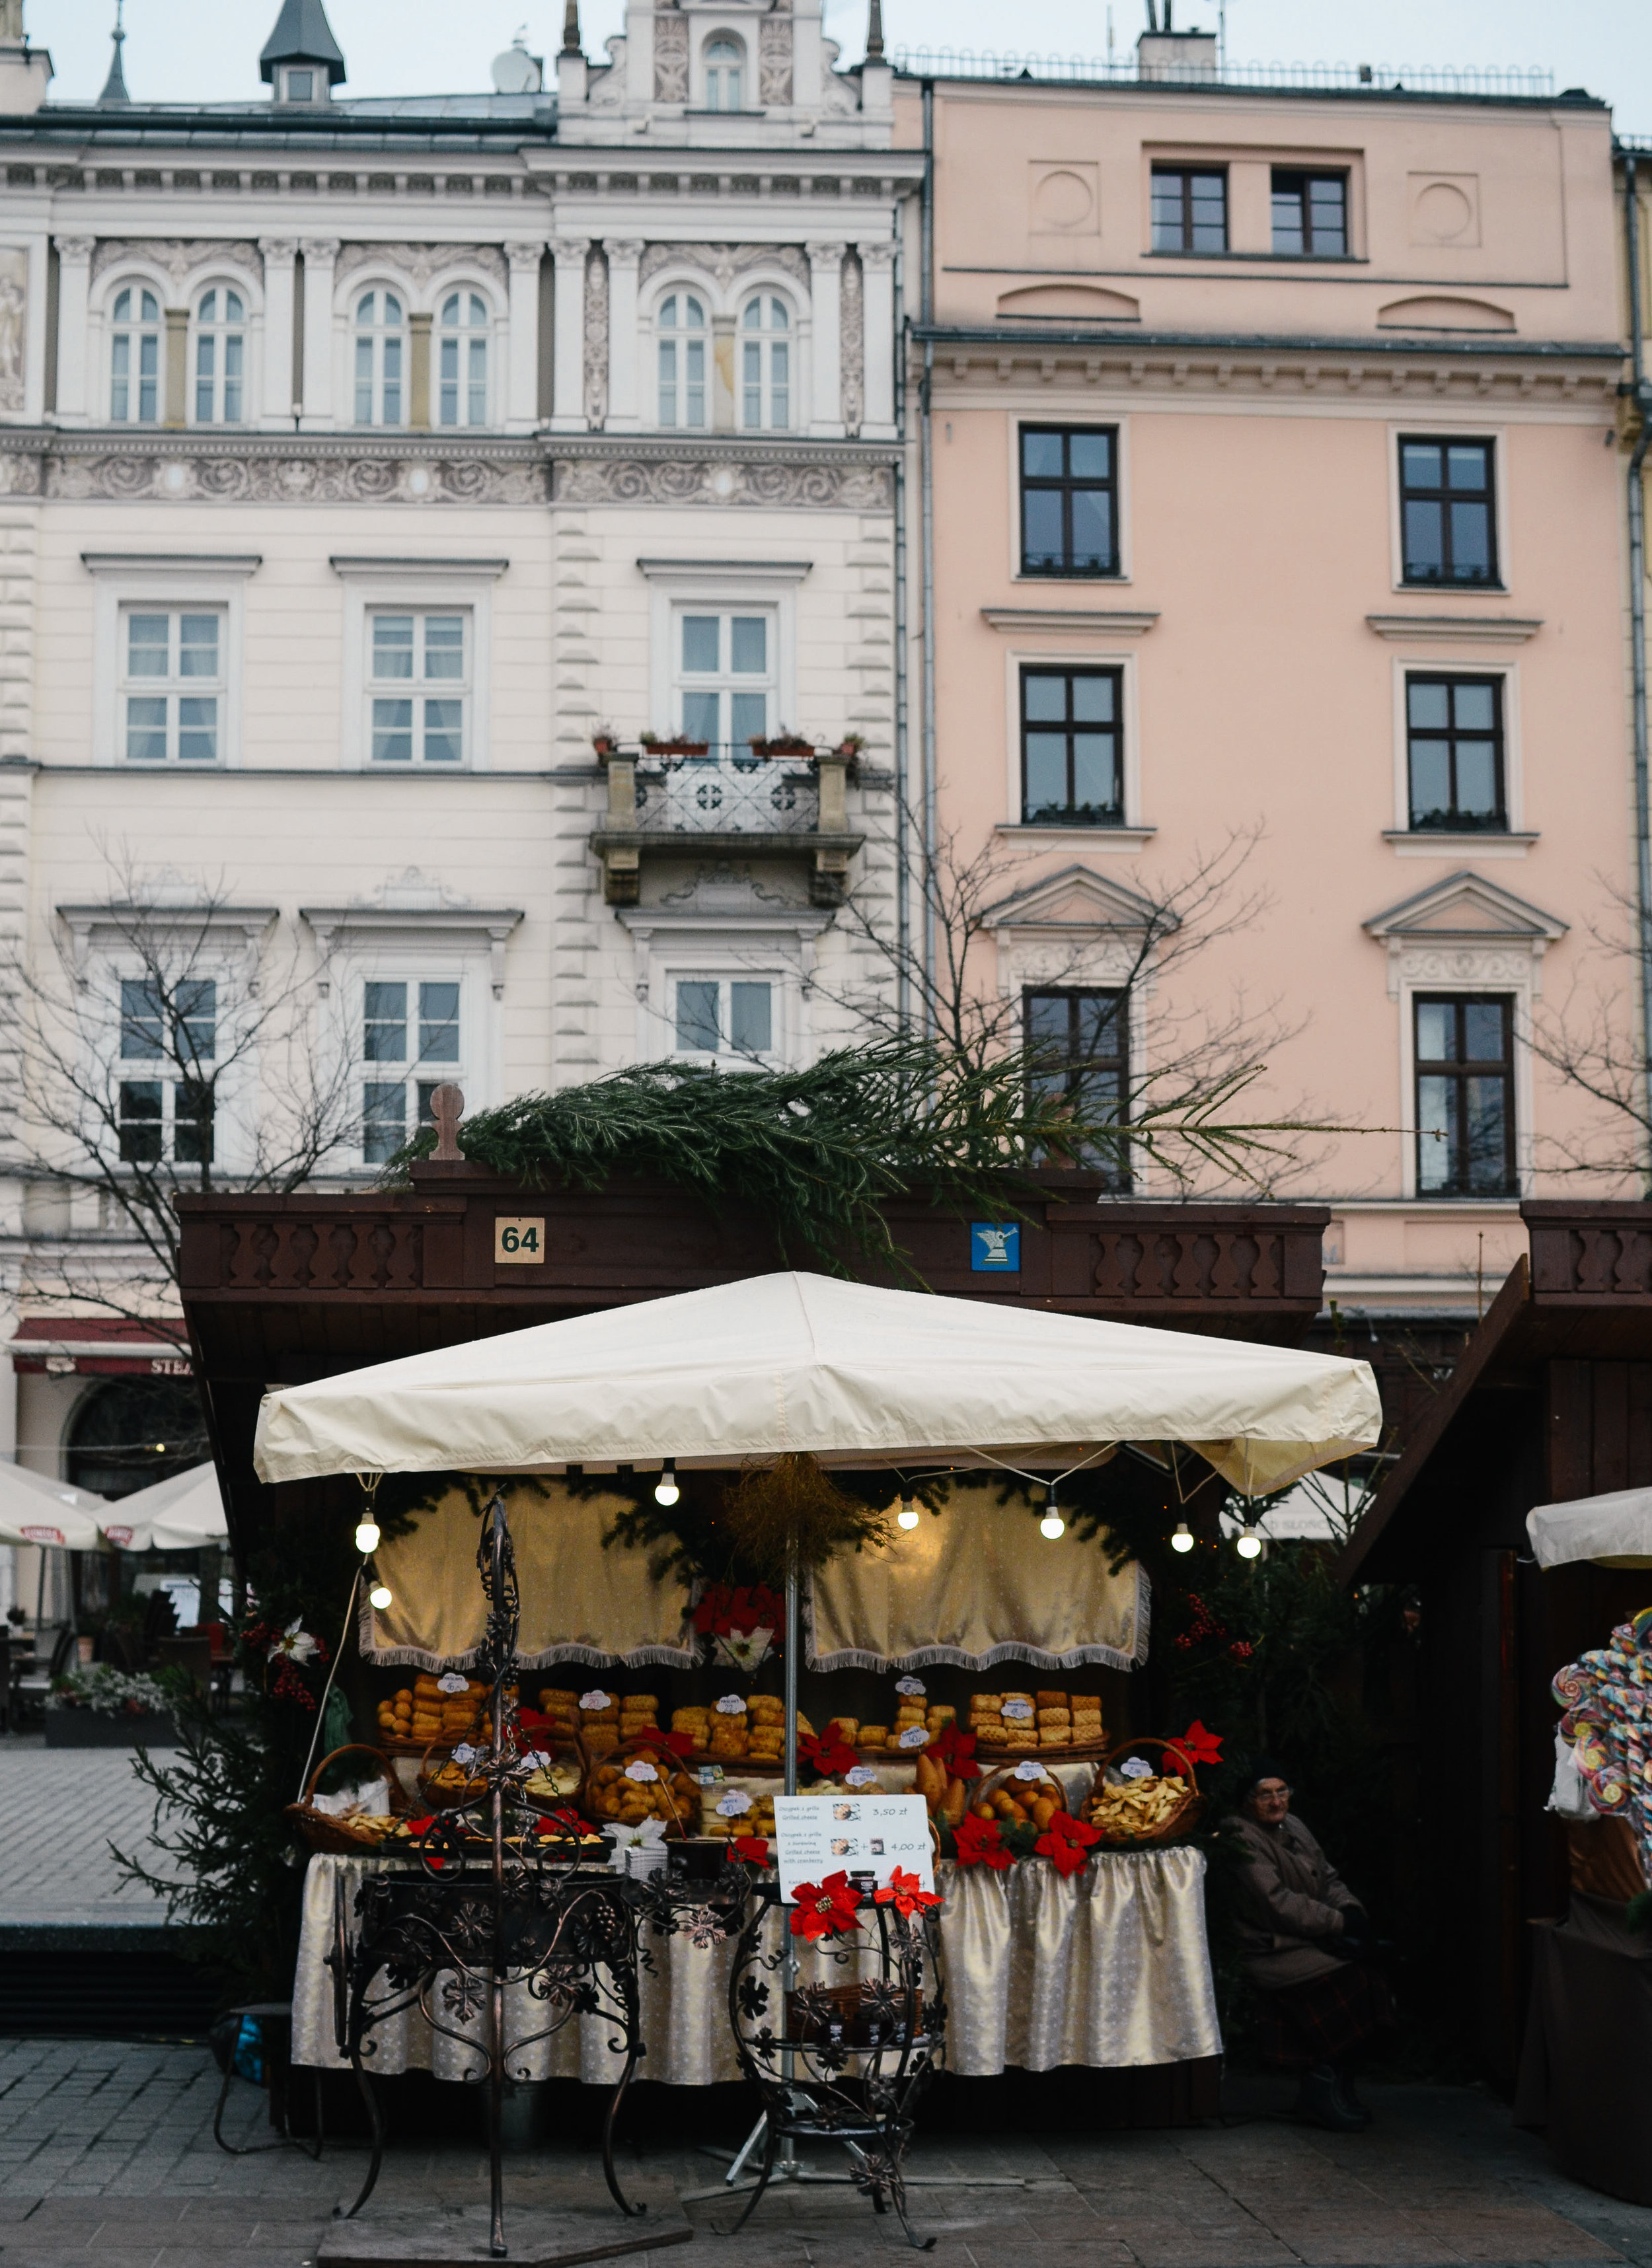 european-christmas-market-travel-guide-lifeonpine_DSC_0829.jpg